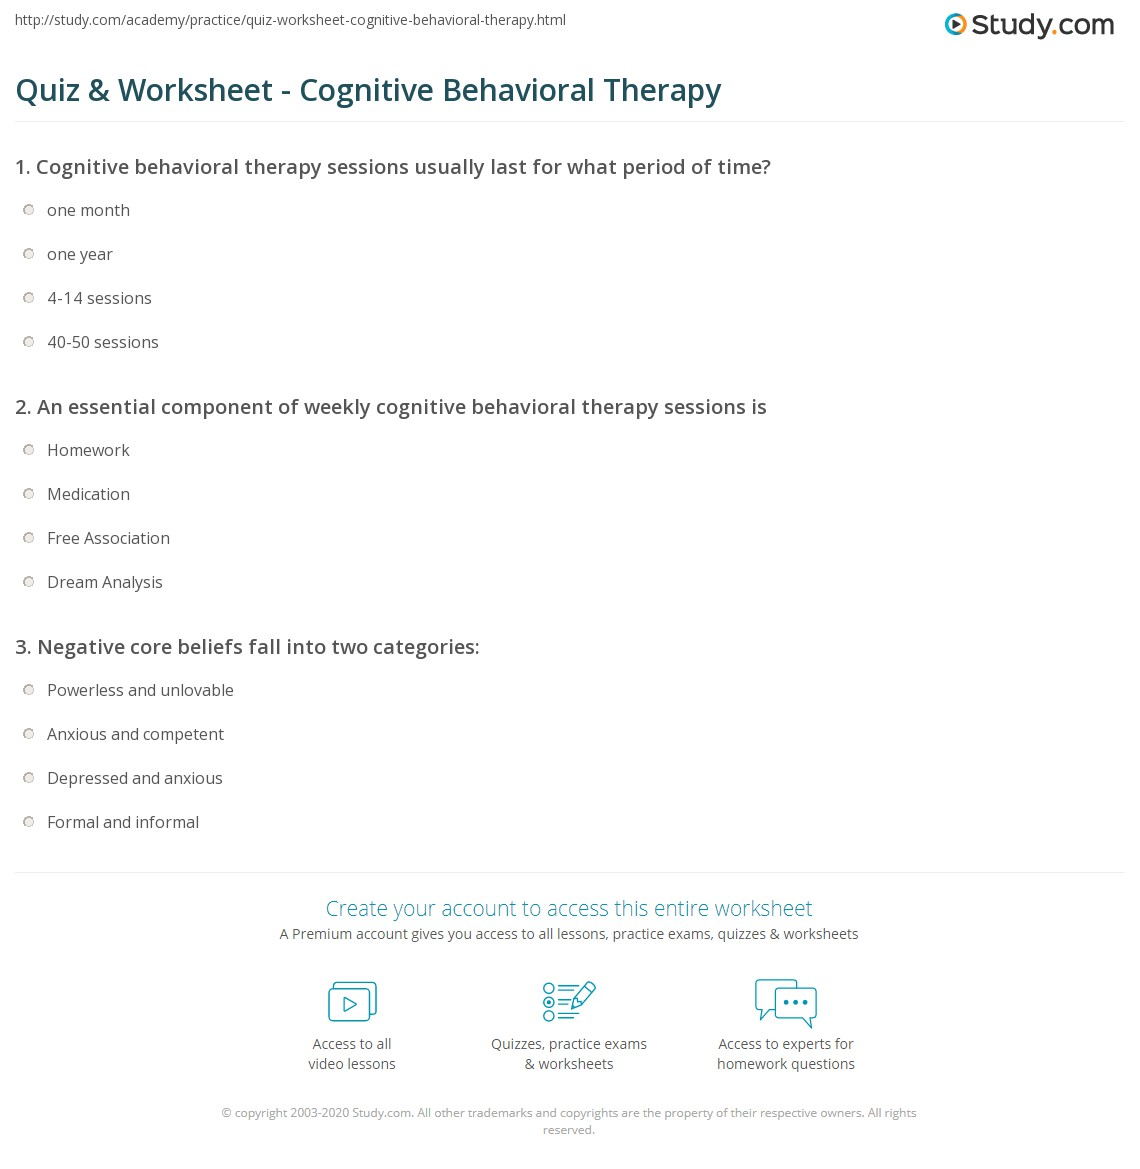 Quiz & Worksheet Cognitive Behavioral Therapy